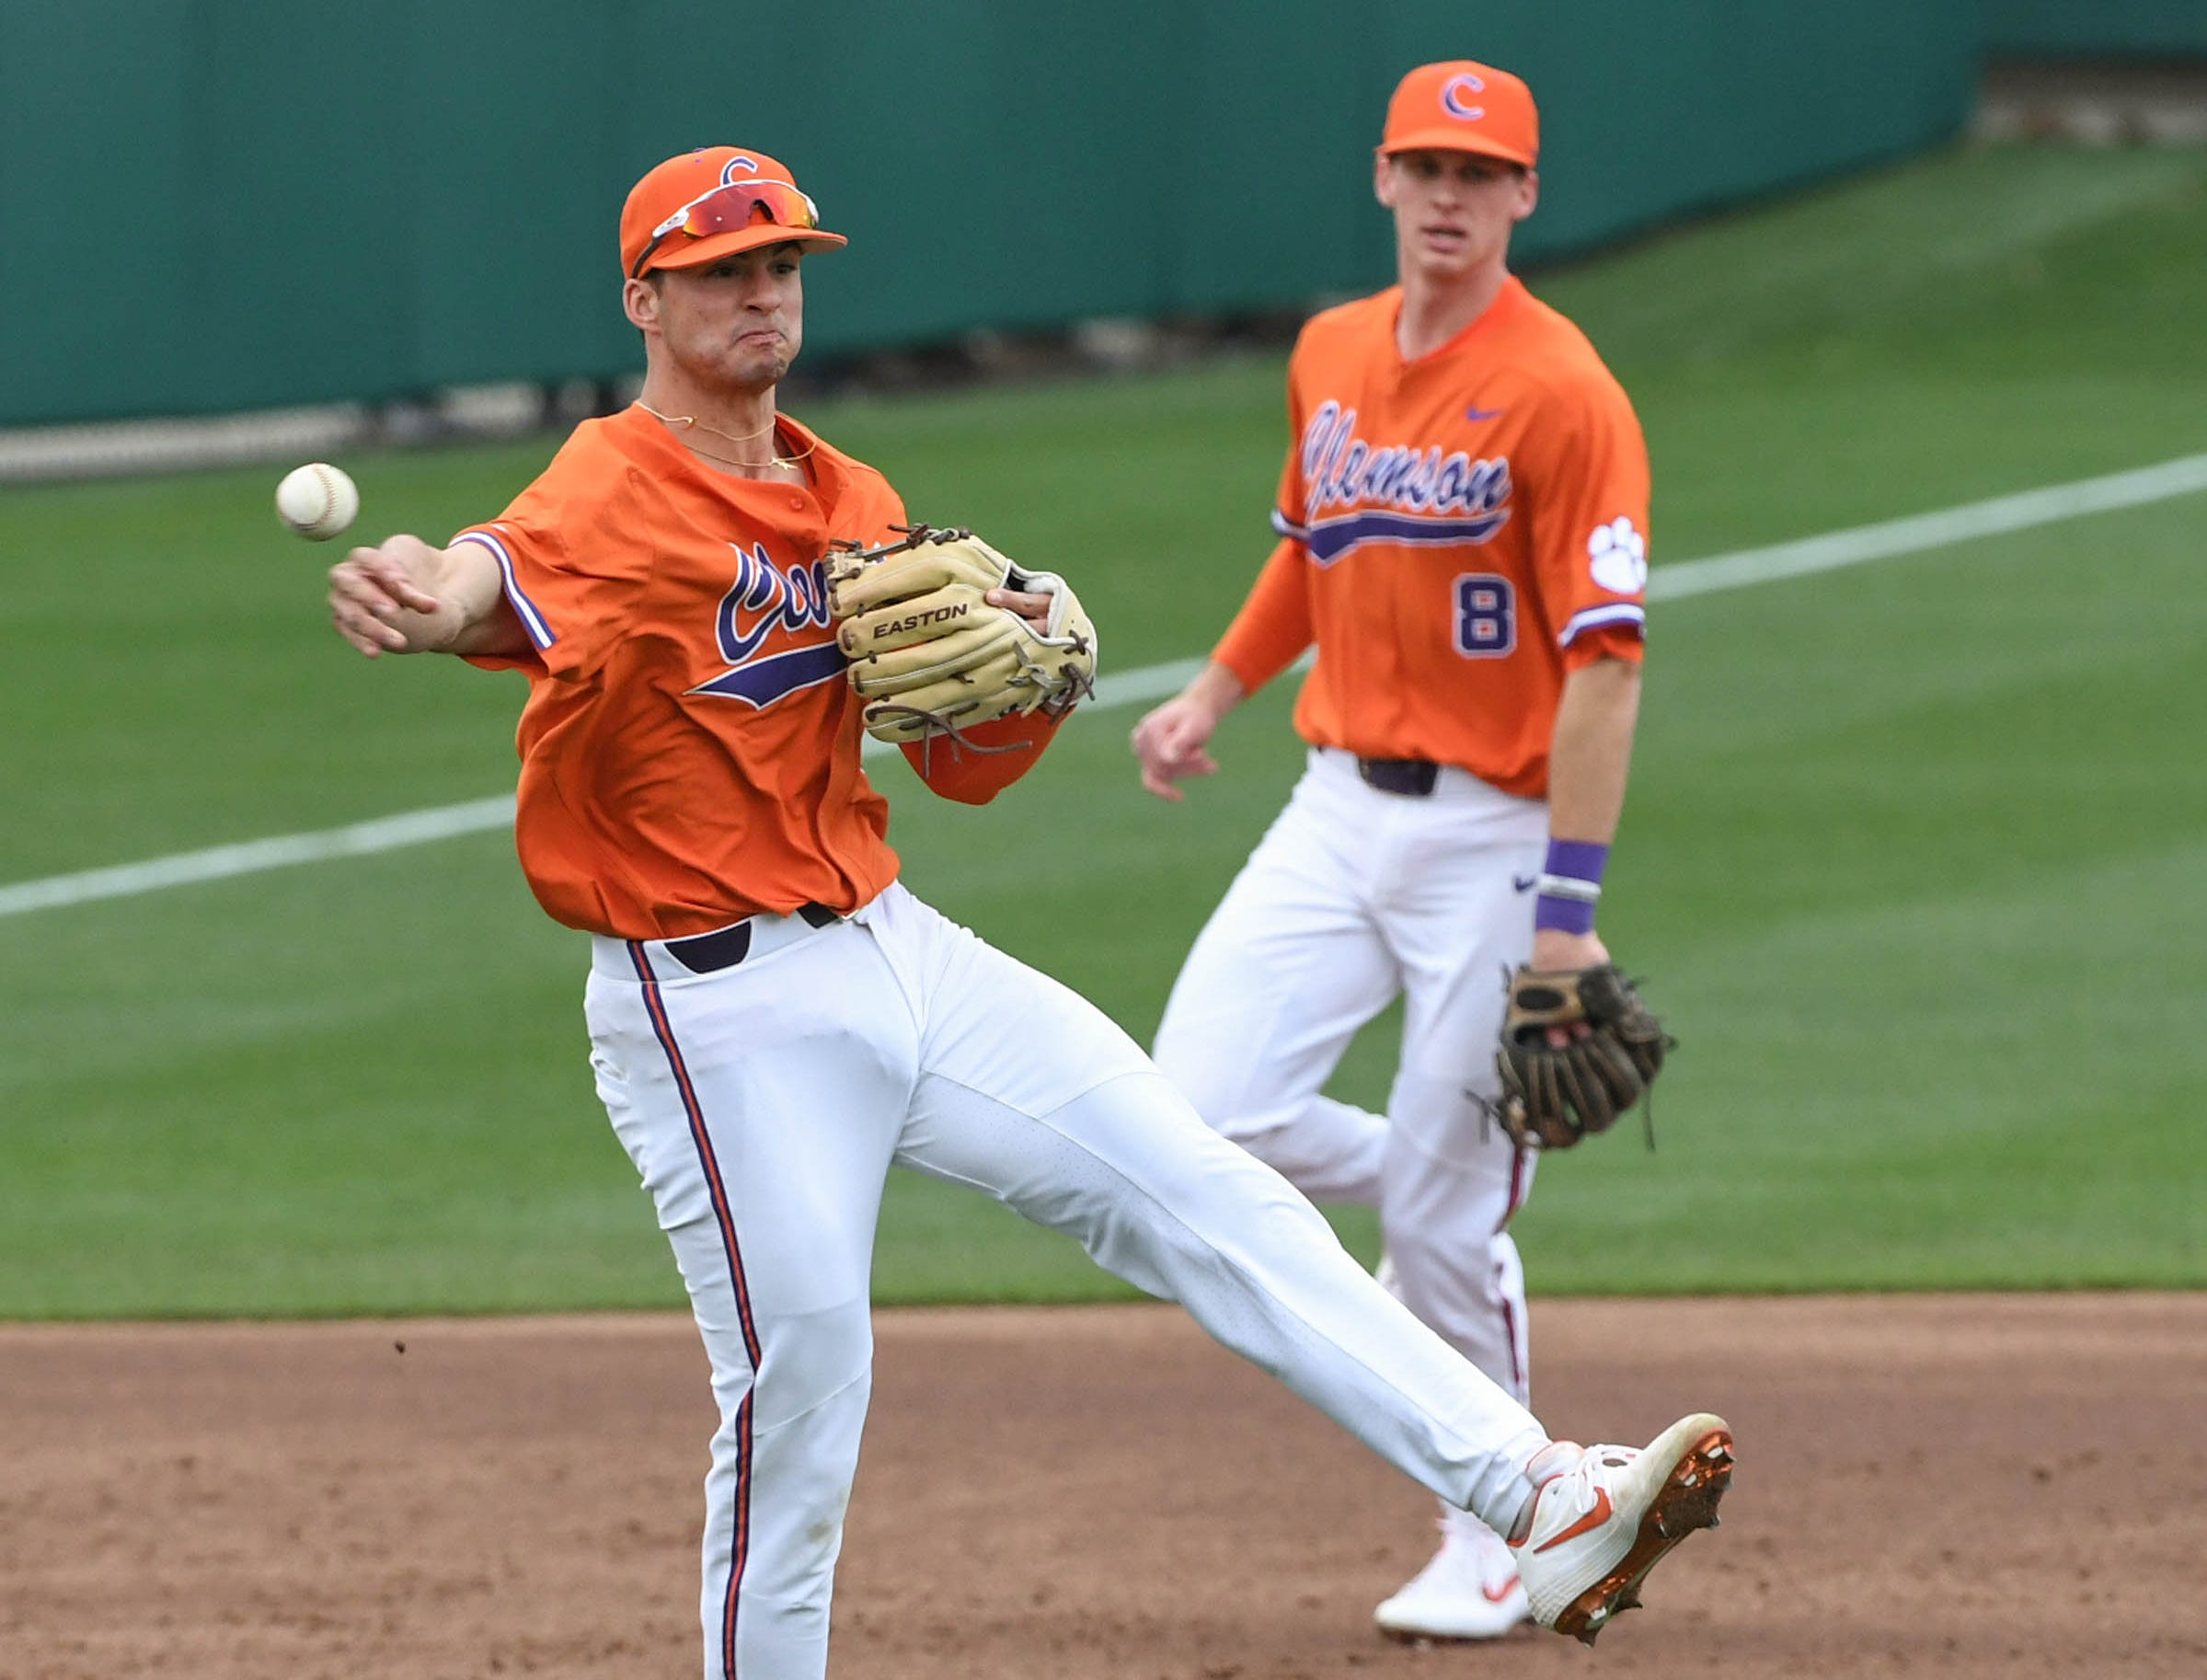 Clemson sophomore Sam Hall(5) throws out a South Alabama runner during the top  of the second inning at Doug Kingsmore Stadium in Clemson Friday, February 15, 2019.